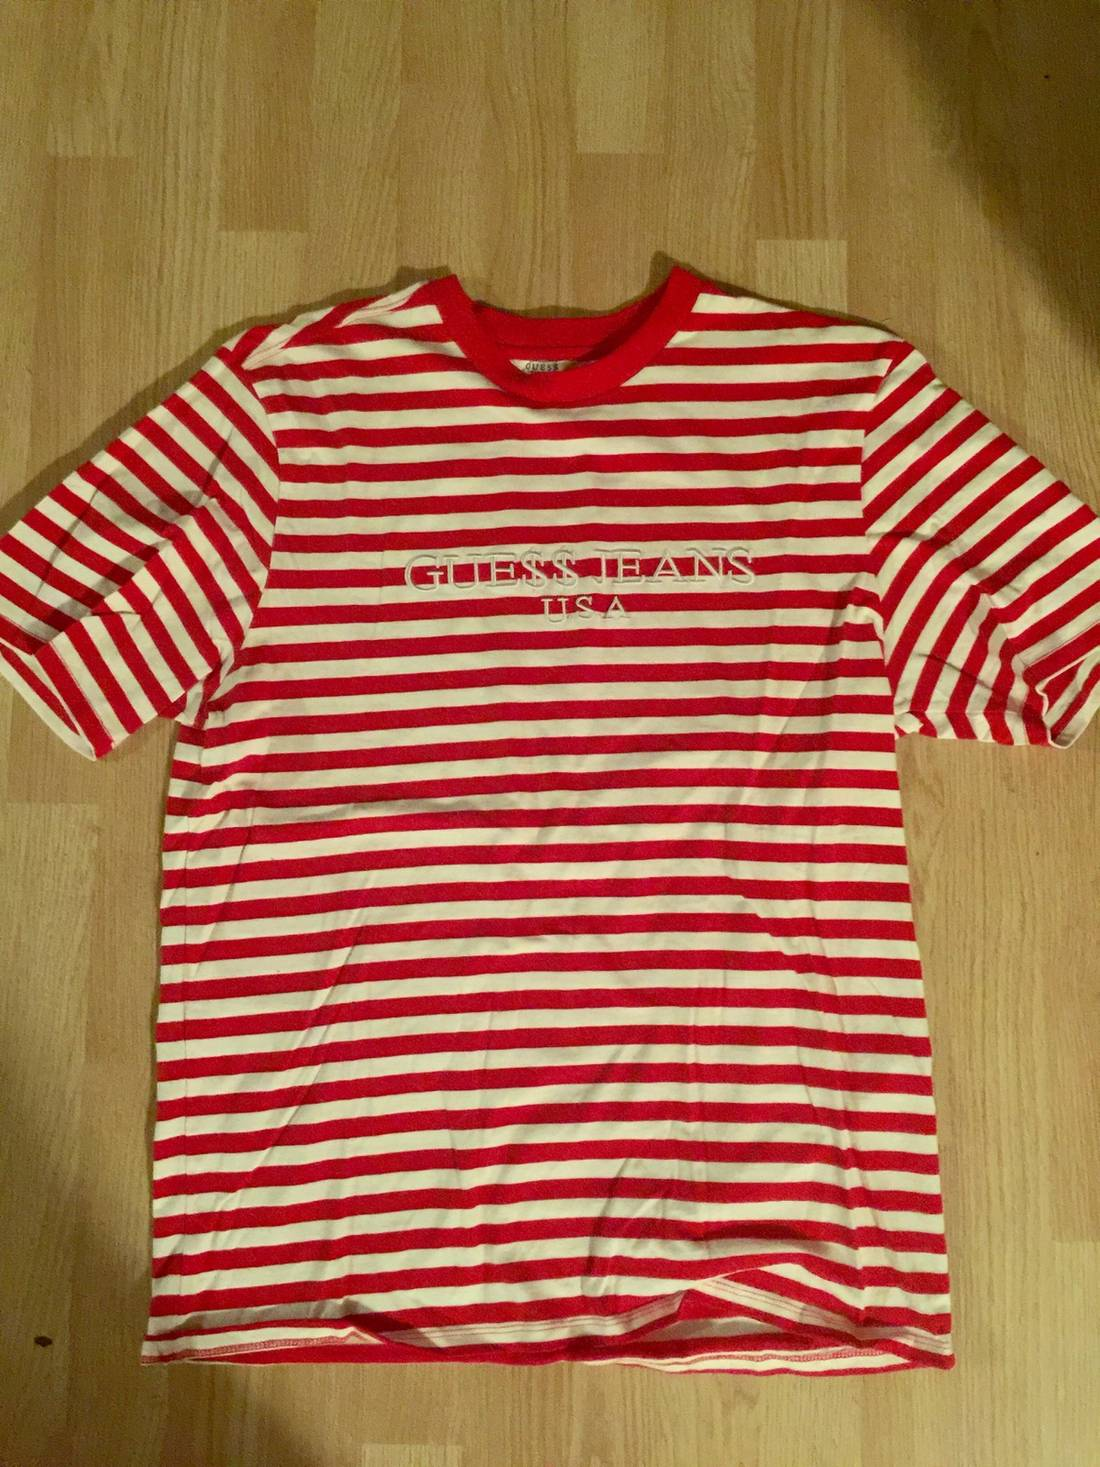 387602102c Guess Jeans Usa Red Striped Shirt - raveitsafe